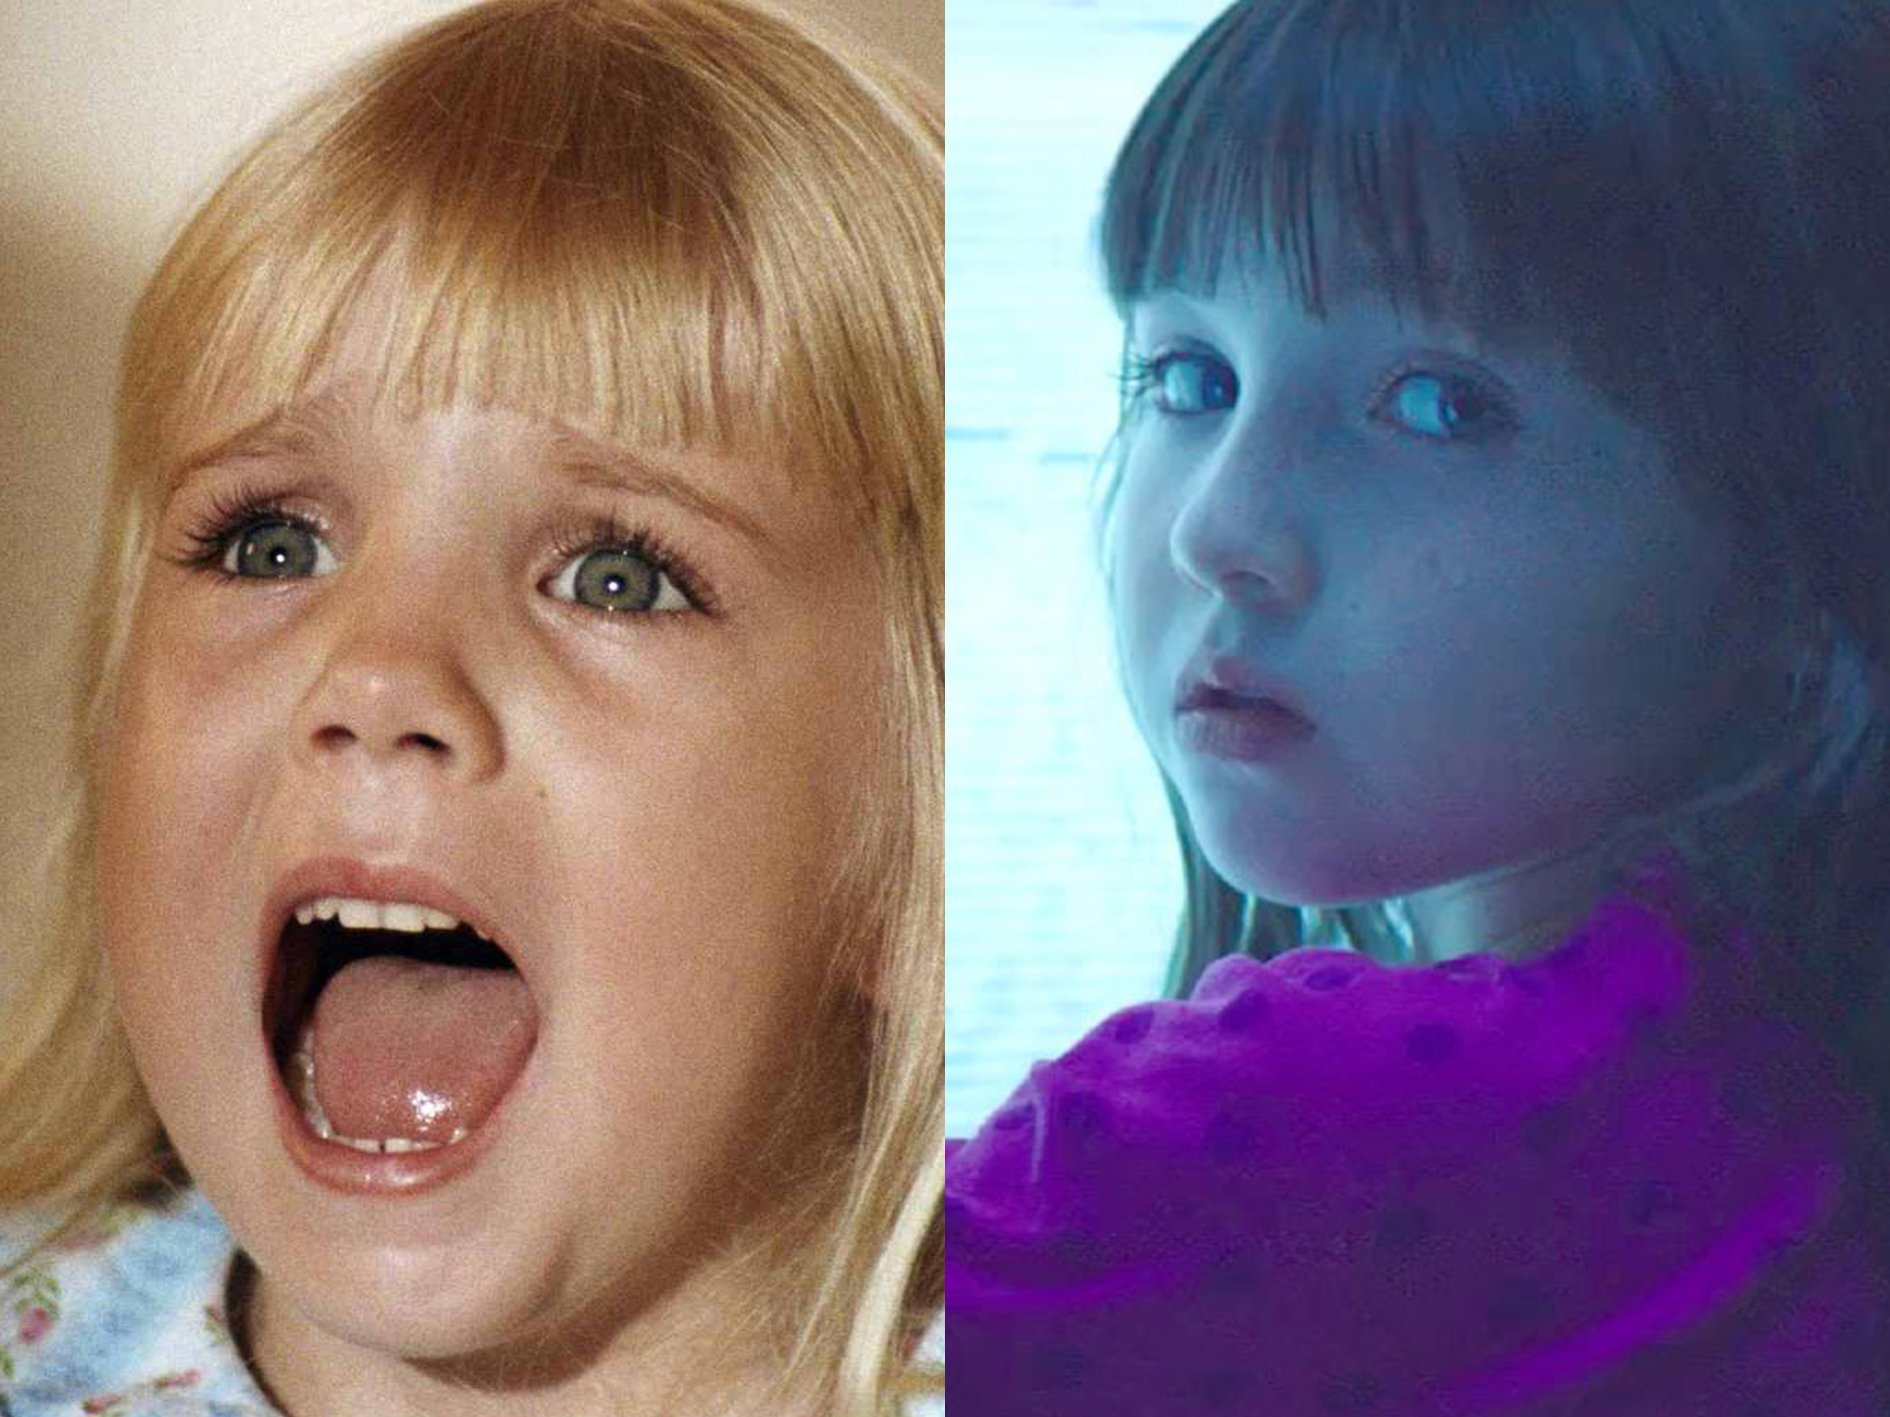 Poltergeist Awful Remakes Of Classic 80s Films That Should Have Been Left Unmade